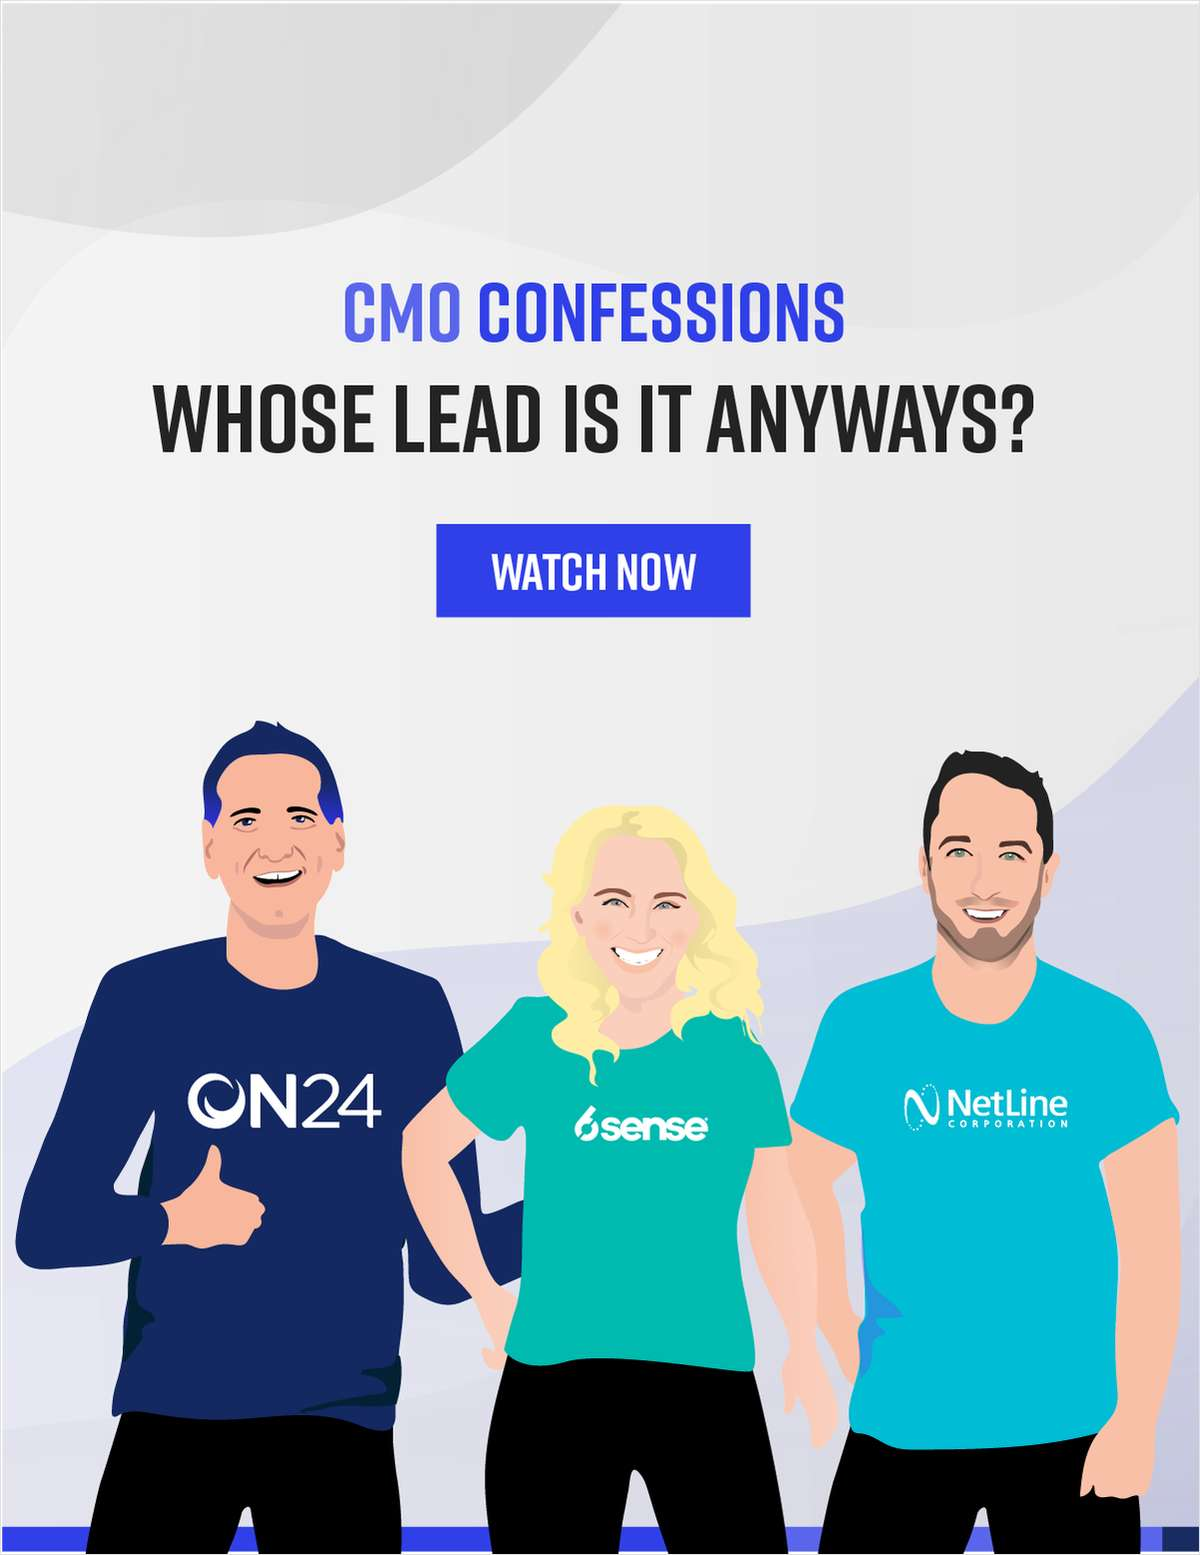 CMO Confessions: Whose Lead Is It Anyways?